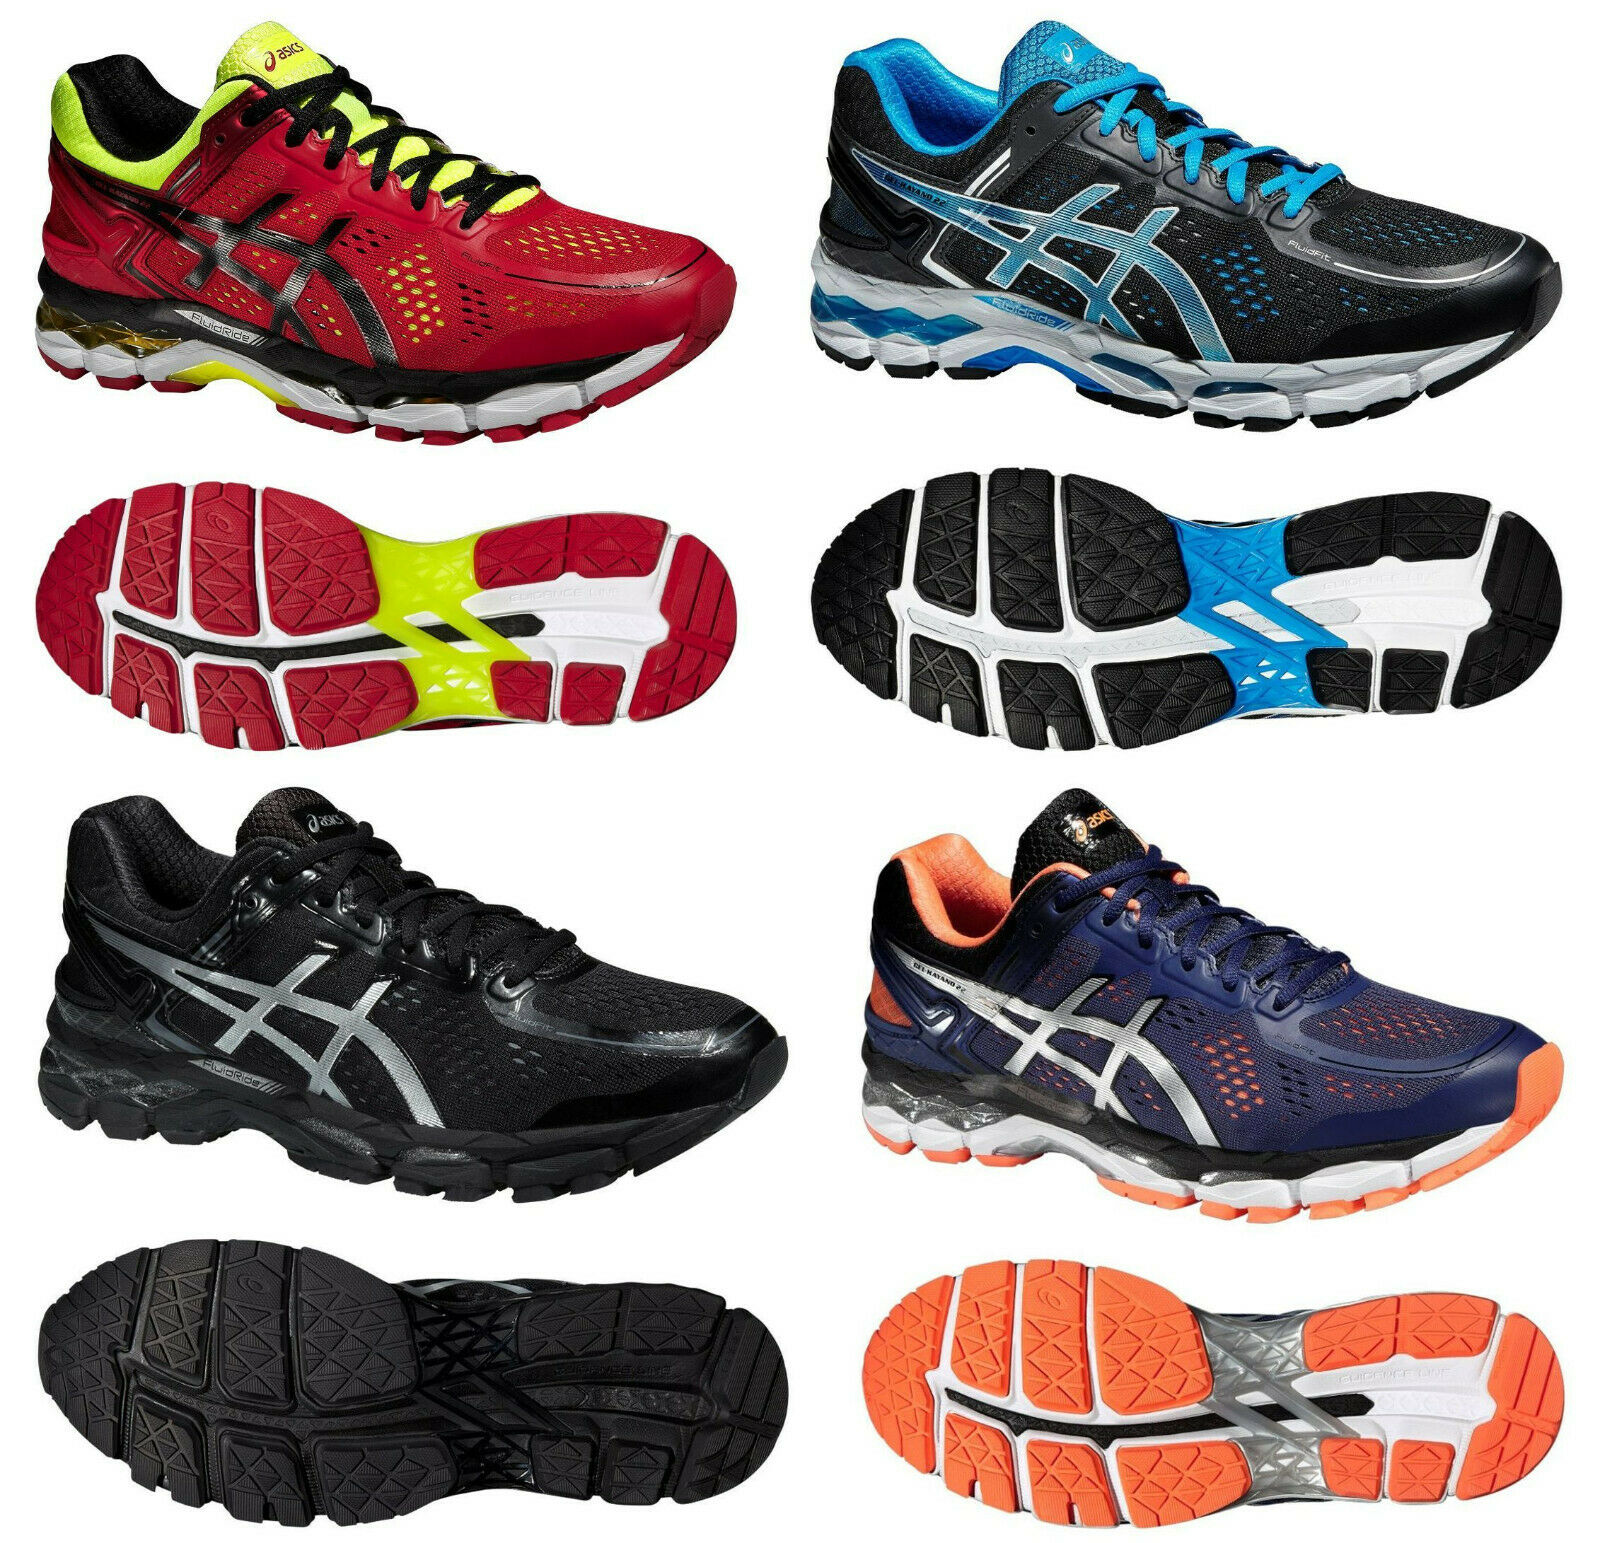 Asics GEL-KAYANO 22 Herren Laufschuhe running shoes rot gelb schwarz blau orange